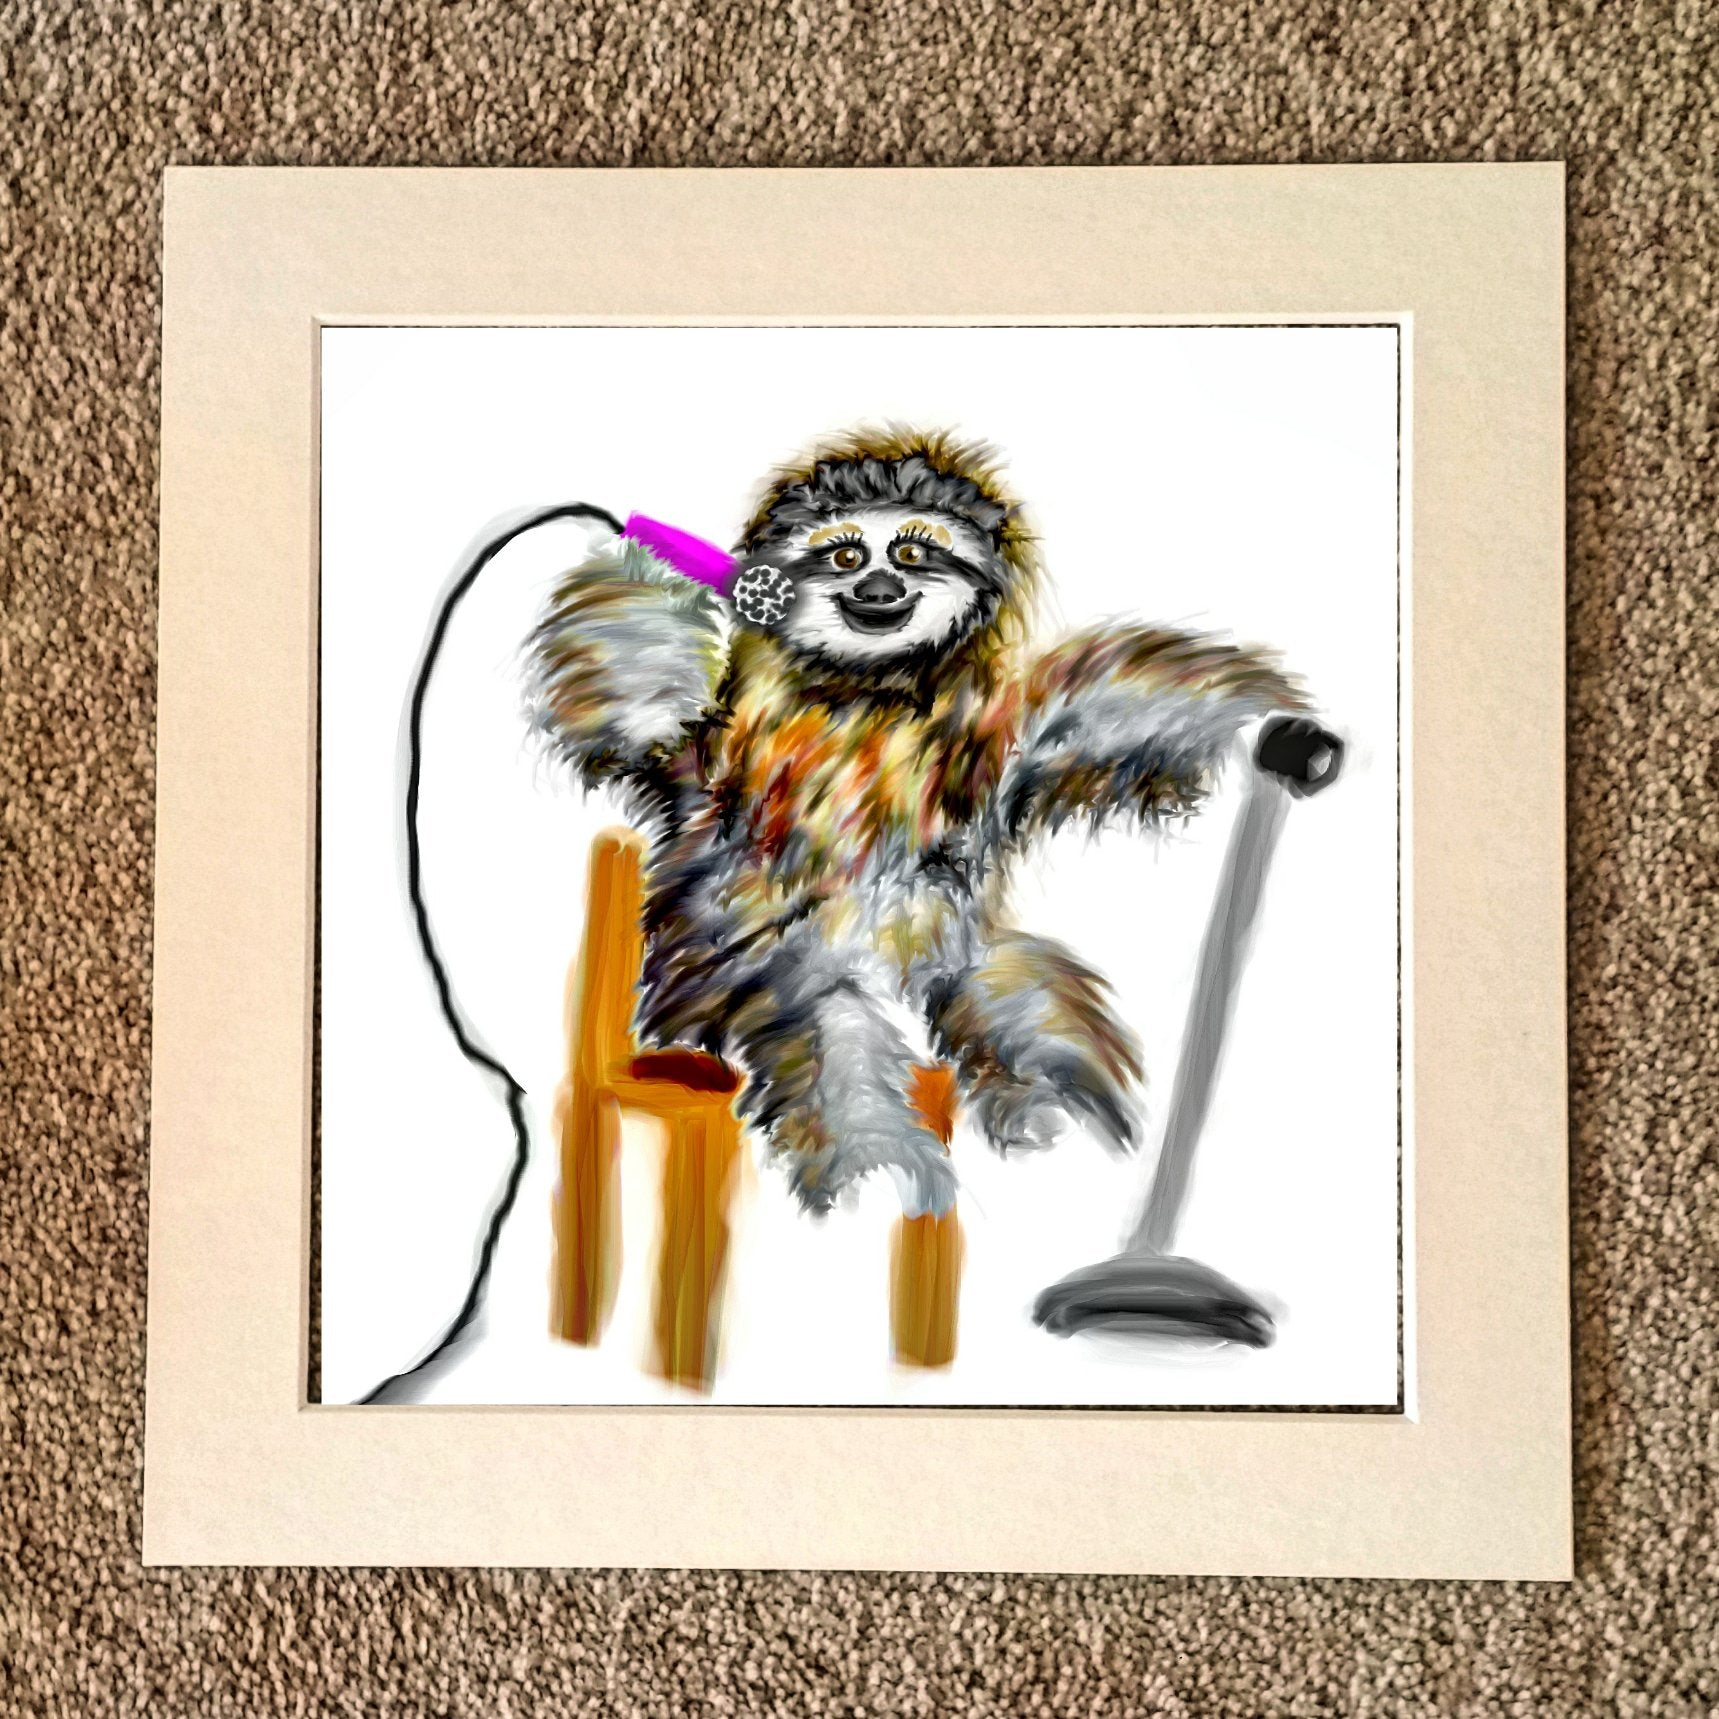 Soulful sloth